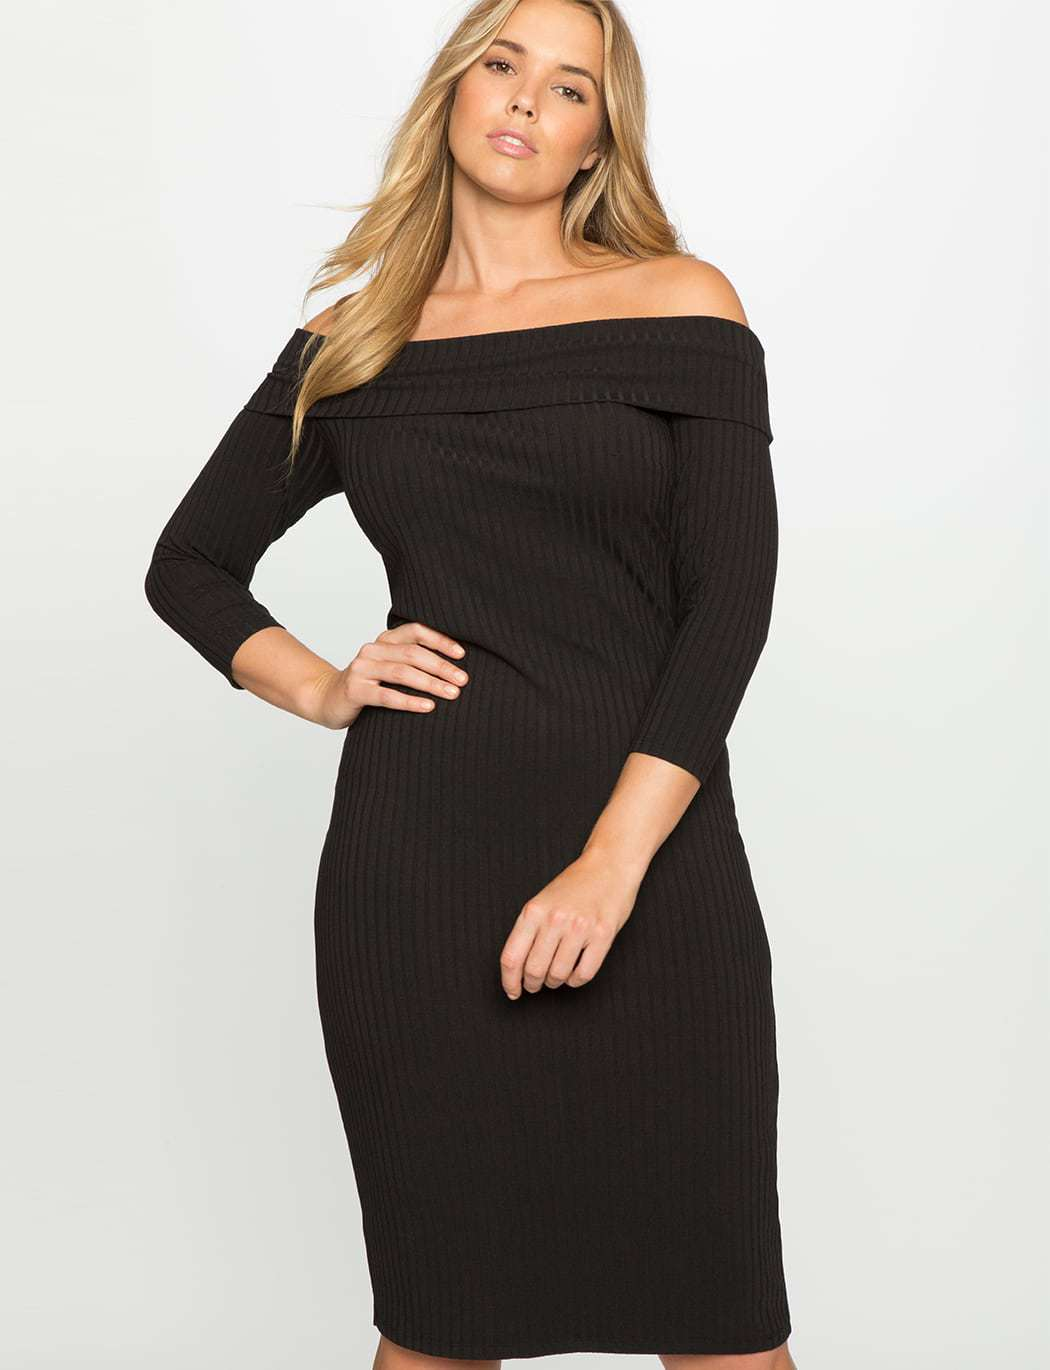 ELOQUII Ribbed Off the Shoulder Dress Review - Wardrobe Oxygen